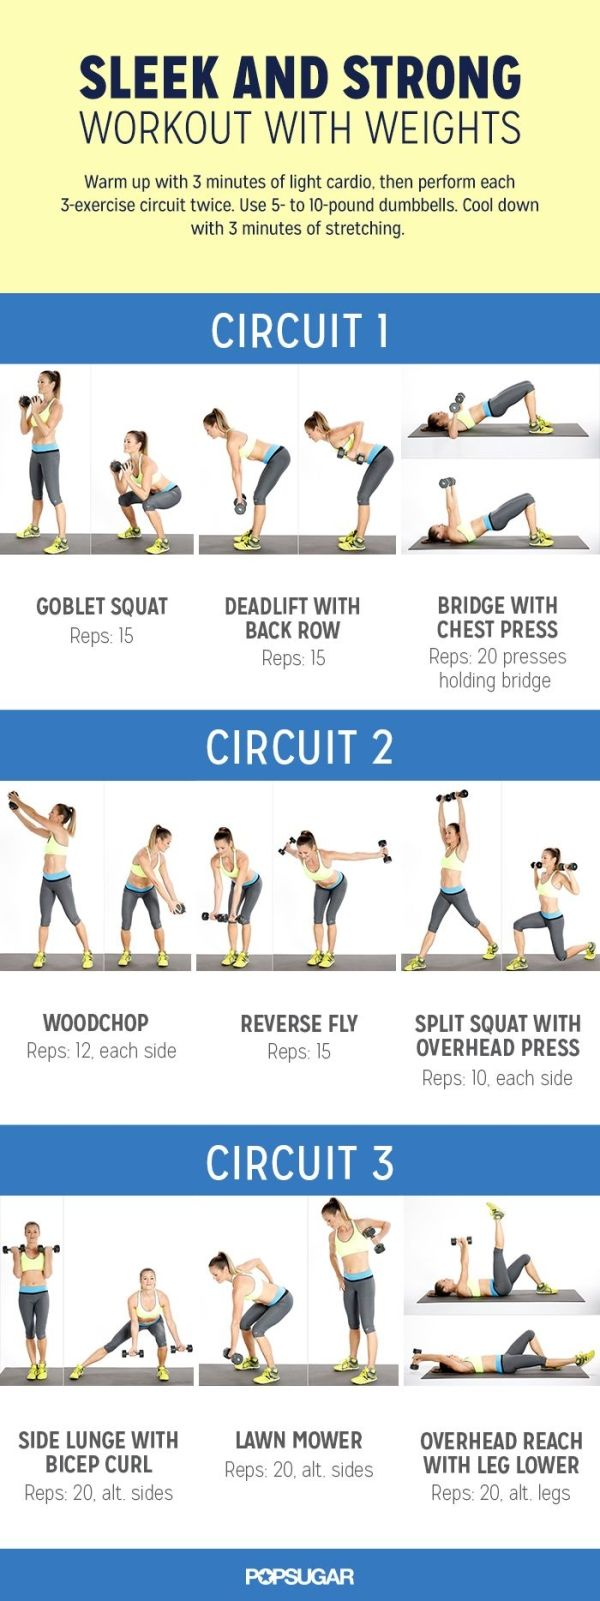 best Fit and Fab images on Pinterest  Posts Workout from home